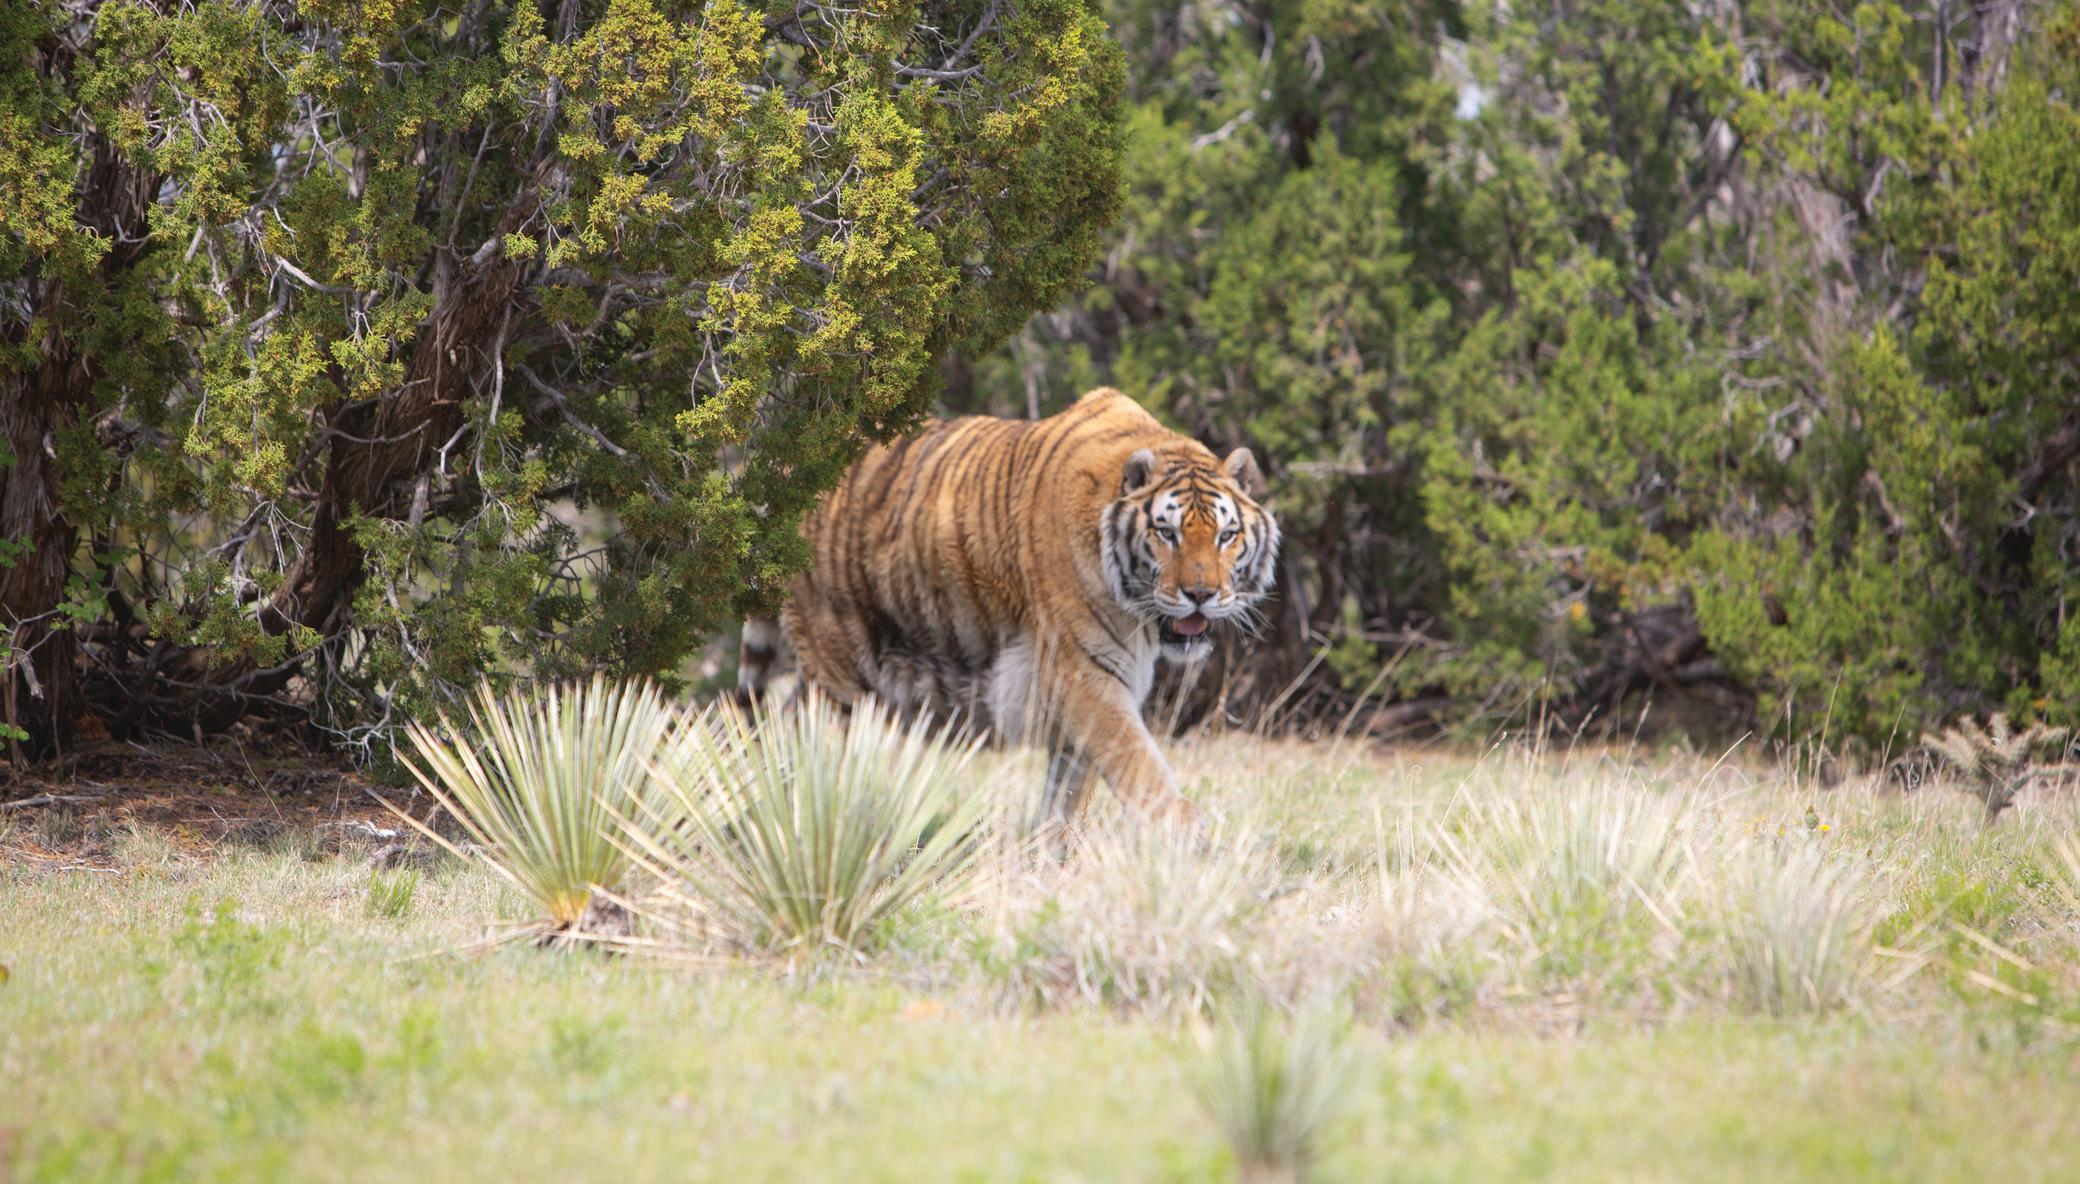 Build Habitats for Rescued Lions, Tigers, & Bears